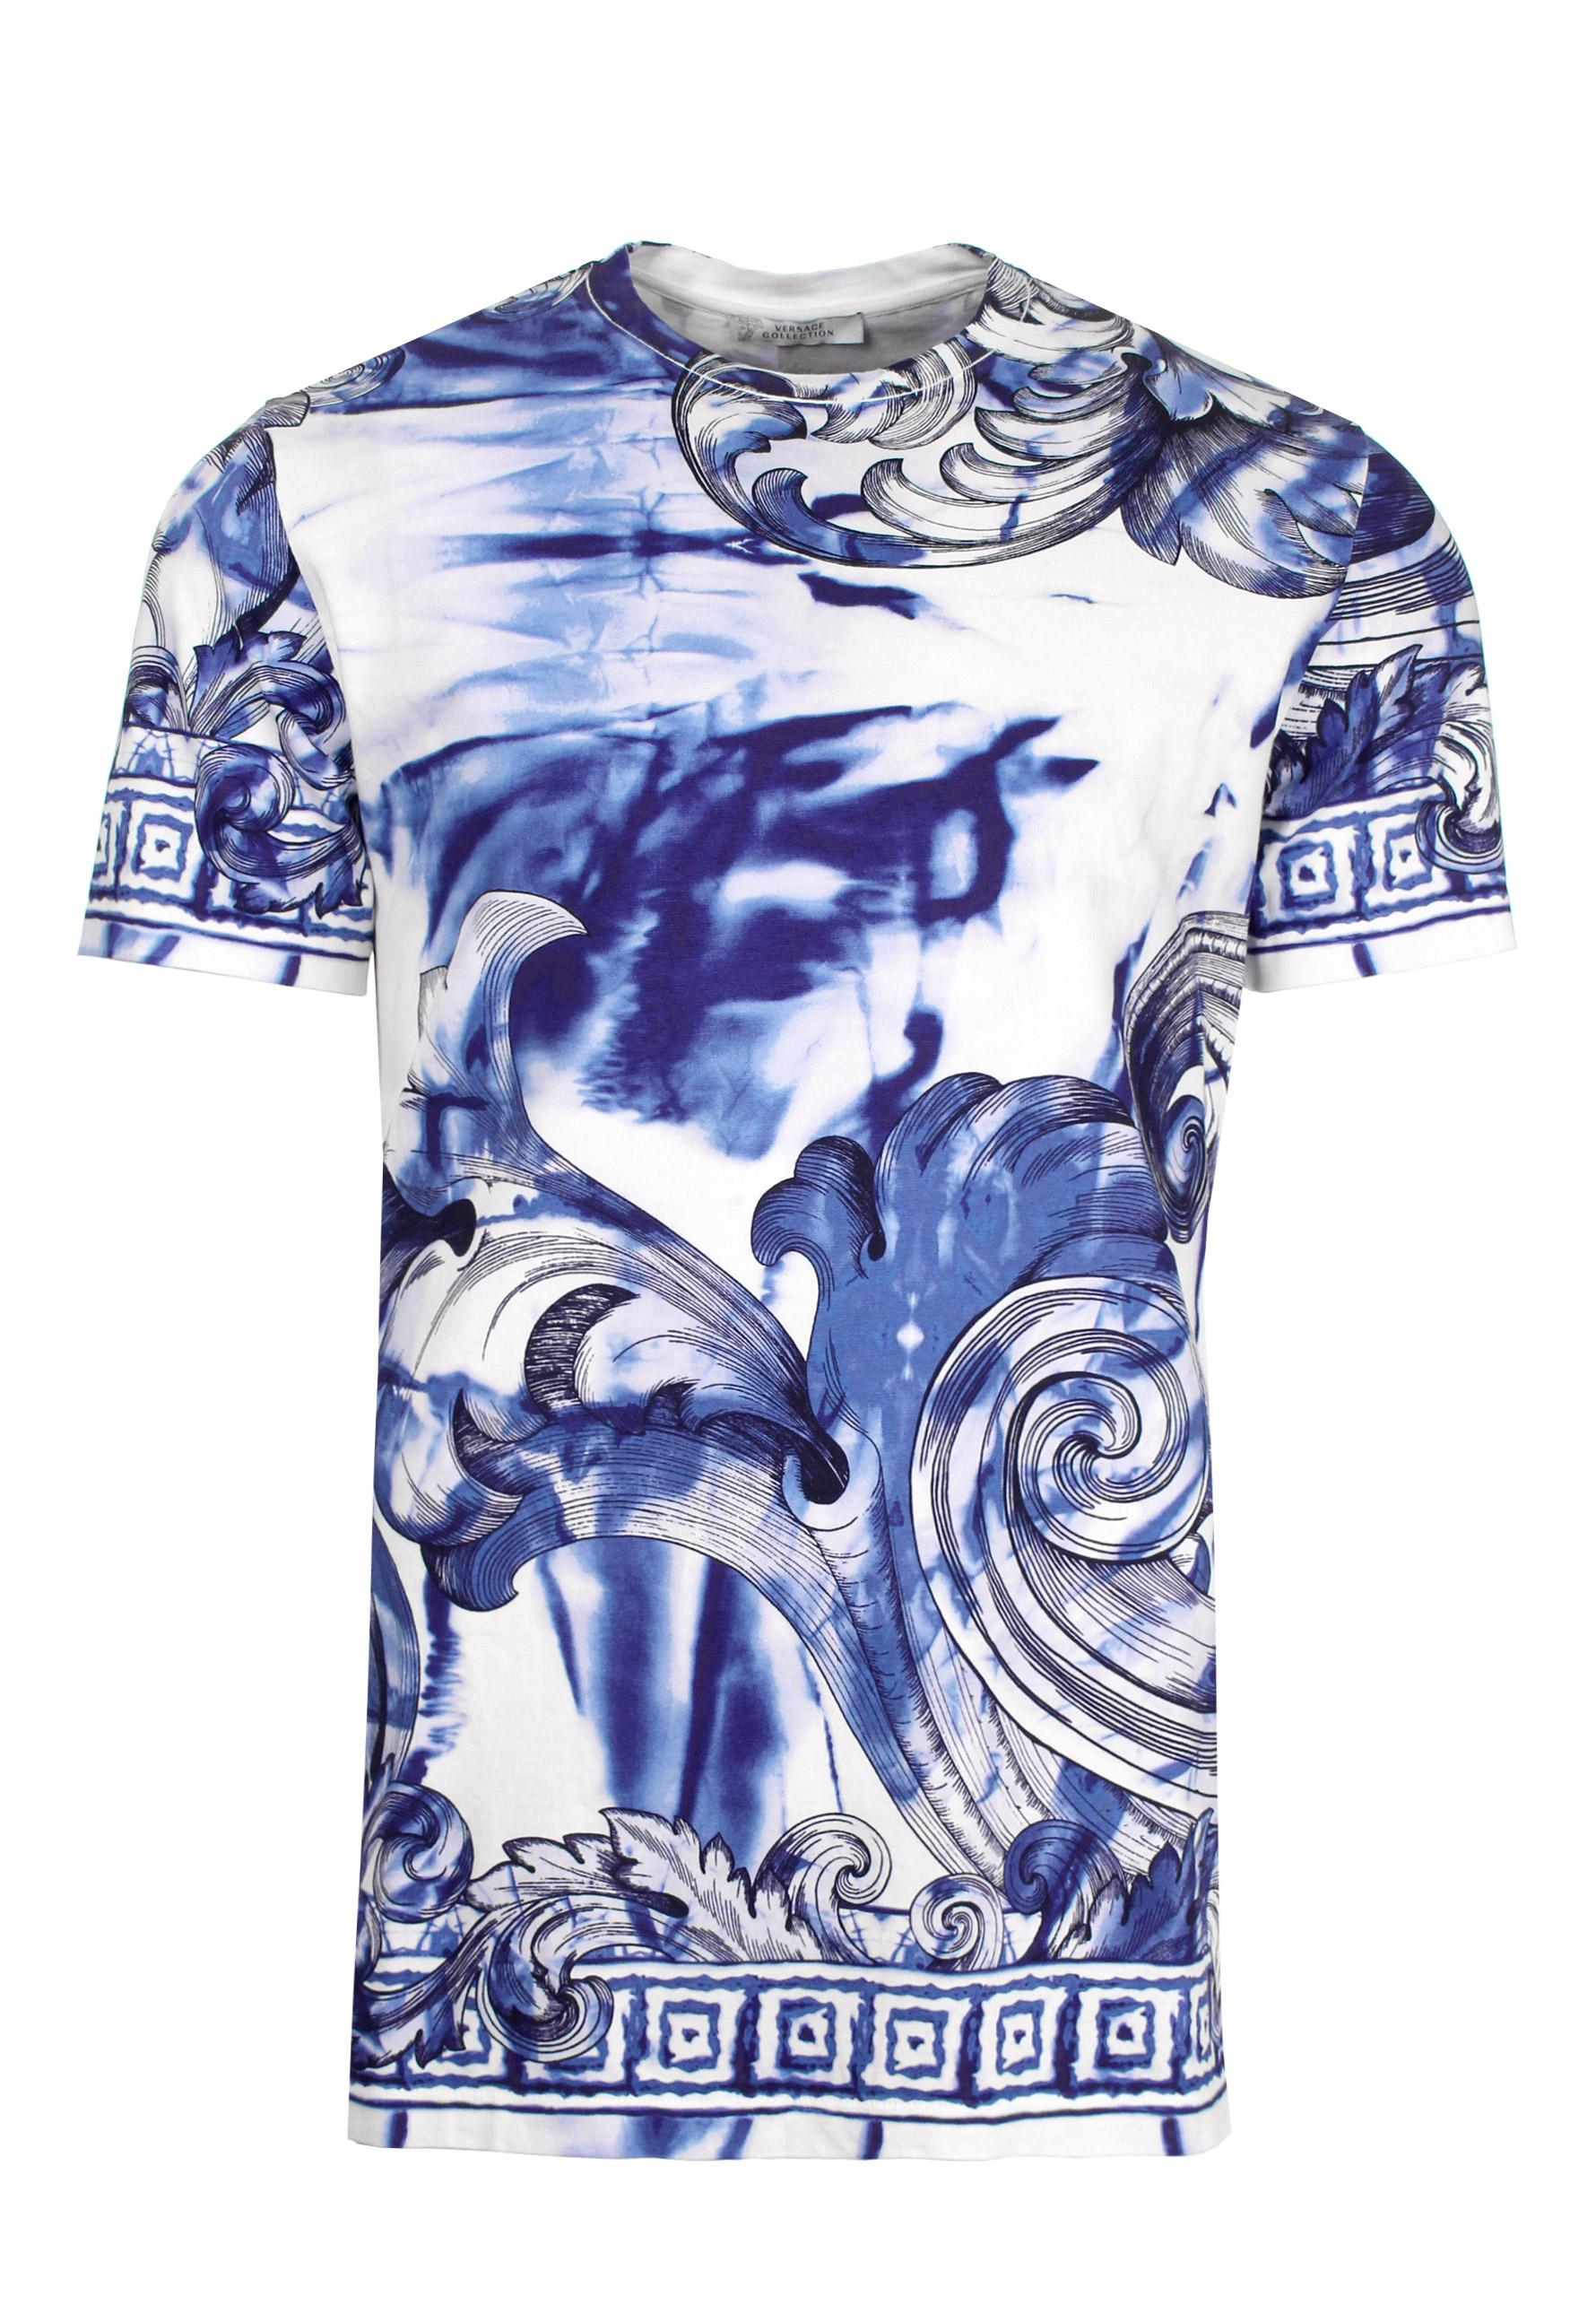 versace tie and dye baroque hand painted t shirt blue navy in blue for men lyst. Black Bedroom Furniture Sets. Home Design Ideas